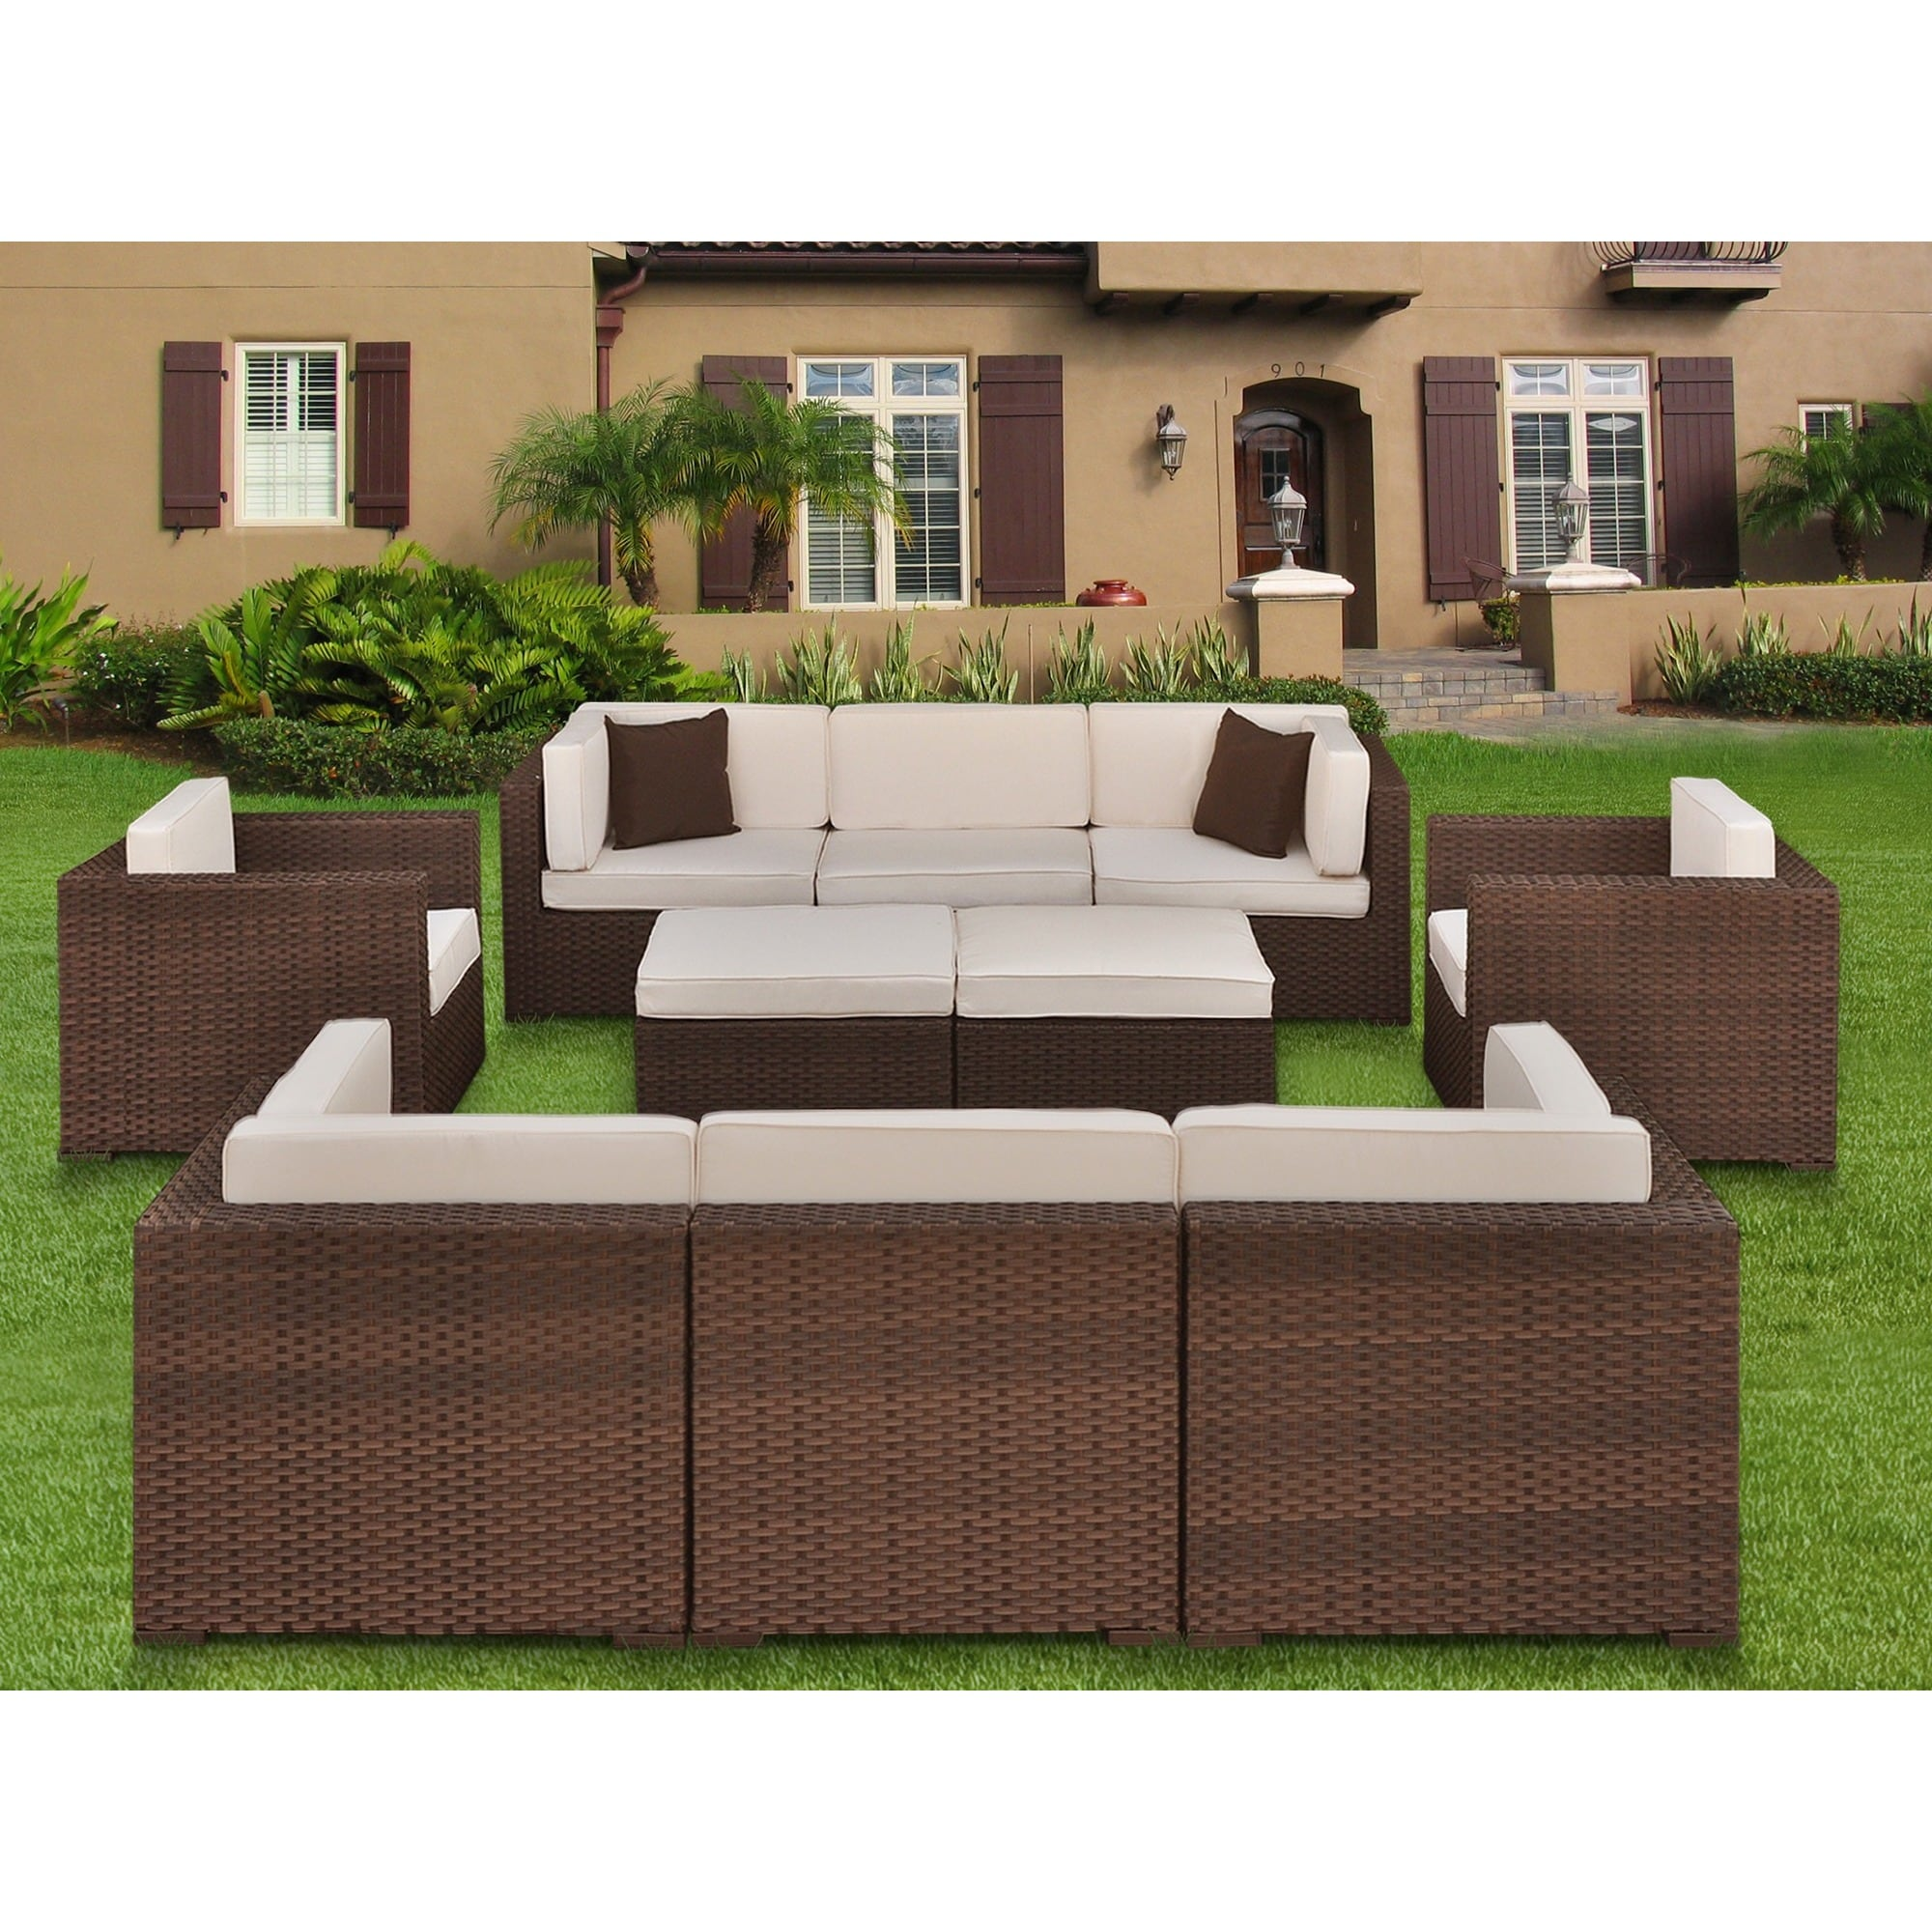 Atlantic Milano 10 piece Patio Furniture Set Free Shipping Today